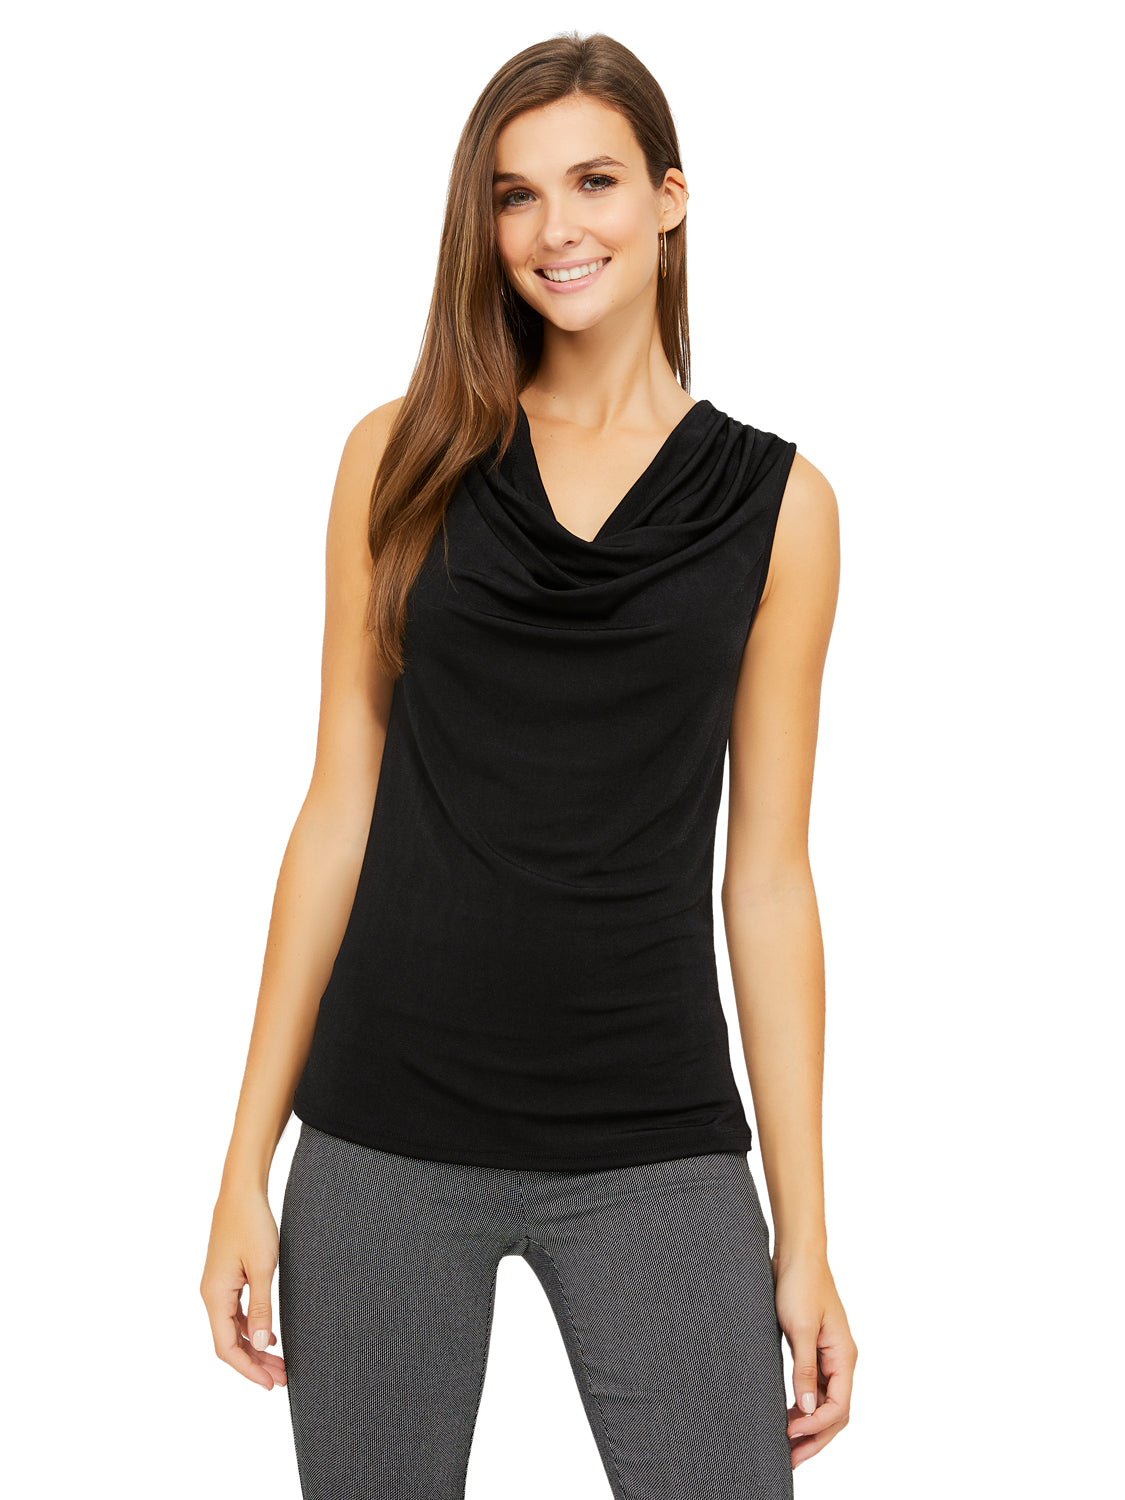 Sleeveless Slinky Cowl Neck Tank Top